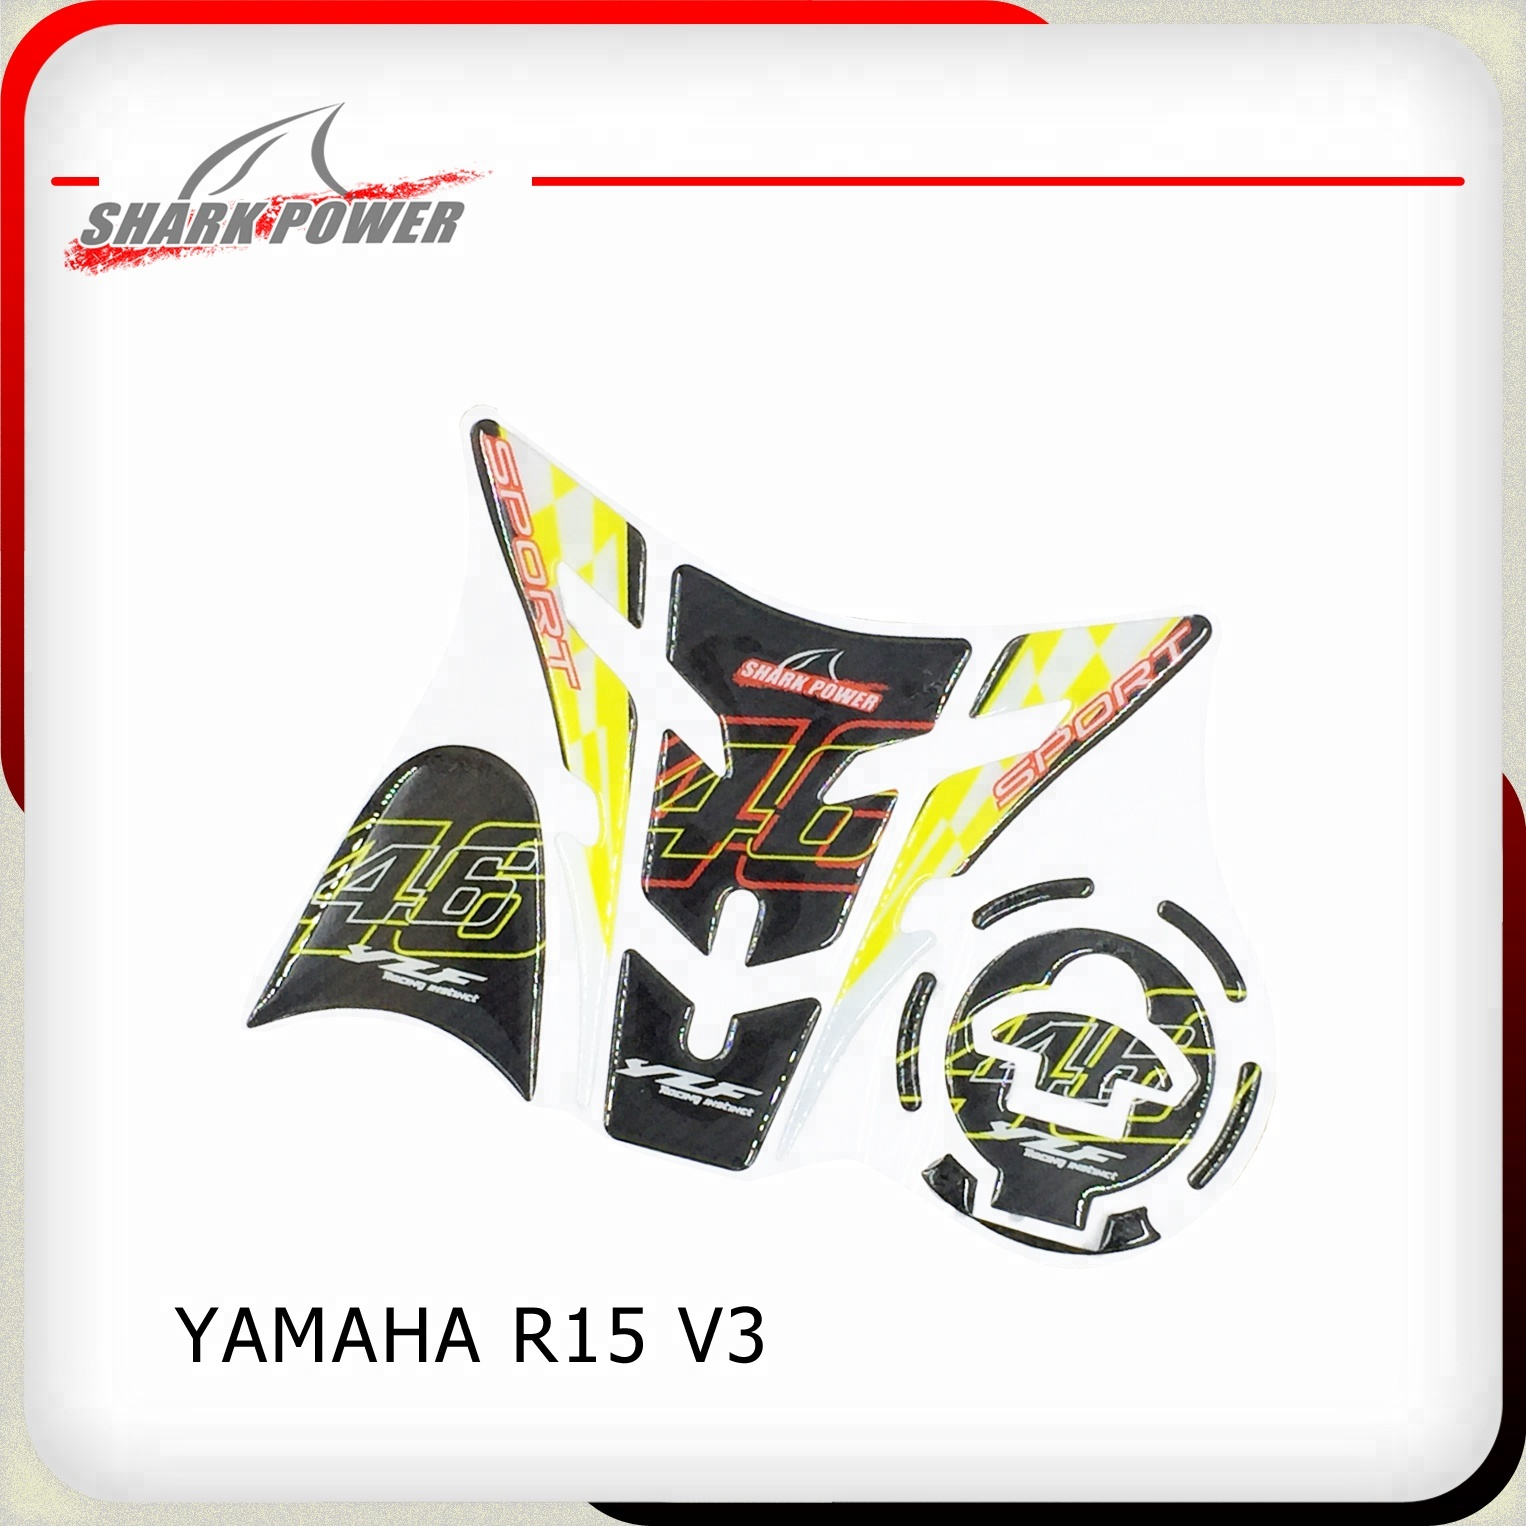 Motorcycle Refit Accessories 5d Tankpad Rubber Garbon Fiber Tank Pad  Protector Sticker For Yamaha R15 V3 - Buy Motorcycle Sticker  Design,Motorcycle